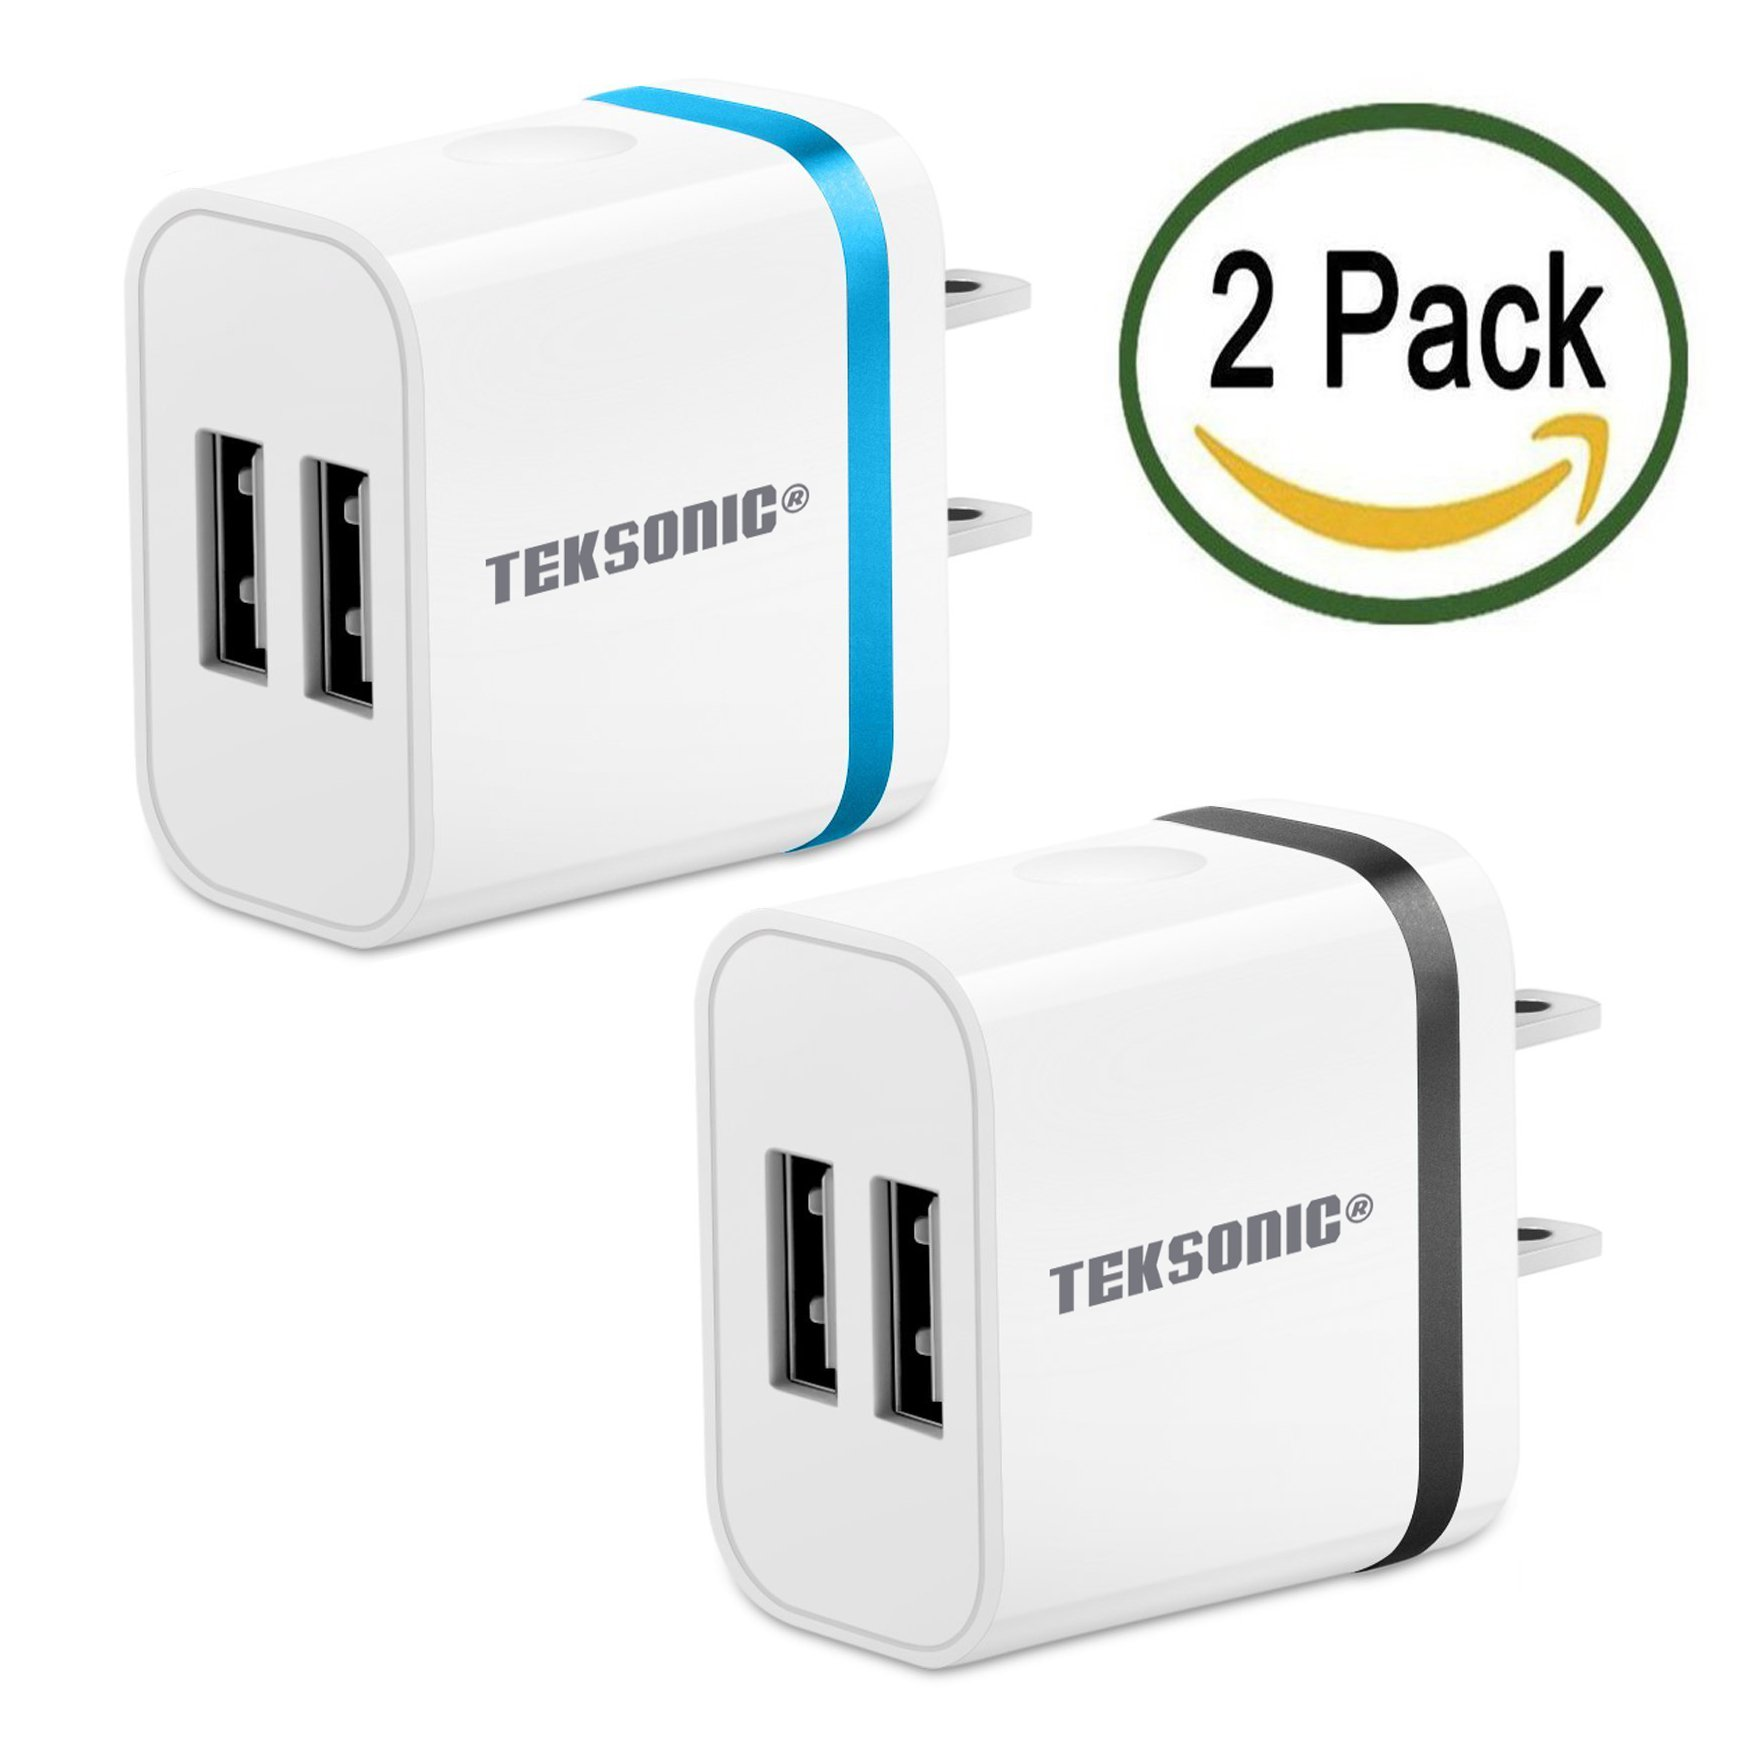 TekSonic 2 Pack 2.1 Amp Dual USB Wall Charger Portable Home Travel USB Adapter Charger Plug for iPhone 7 6 5, iPad, Samsung Galaxy, S7 Edge, Note 5, HTC, LG G5, Nexus, Nokia, Motorola (Silver)